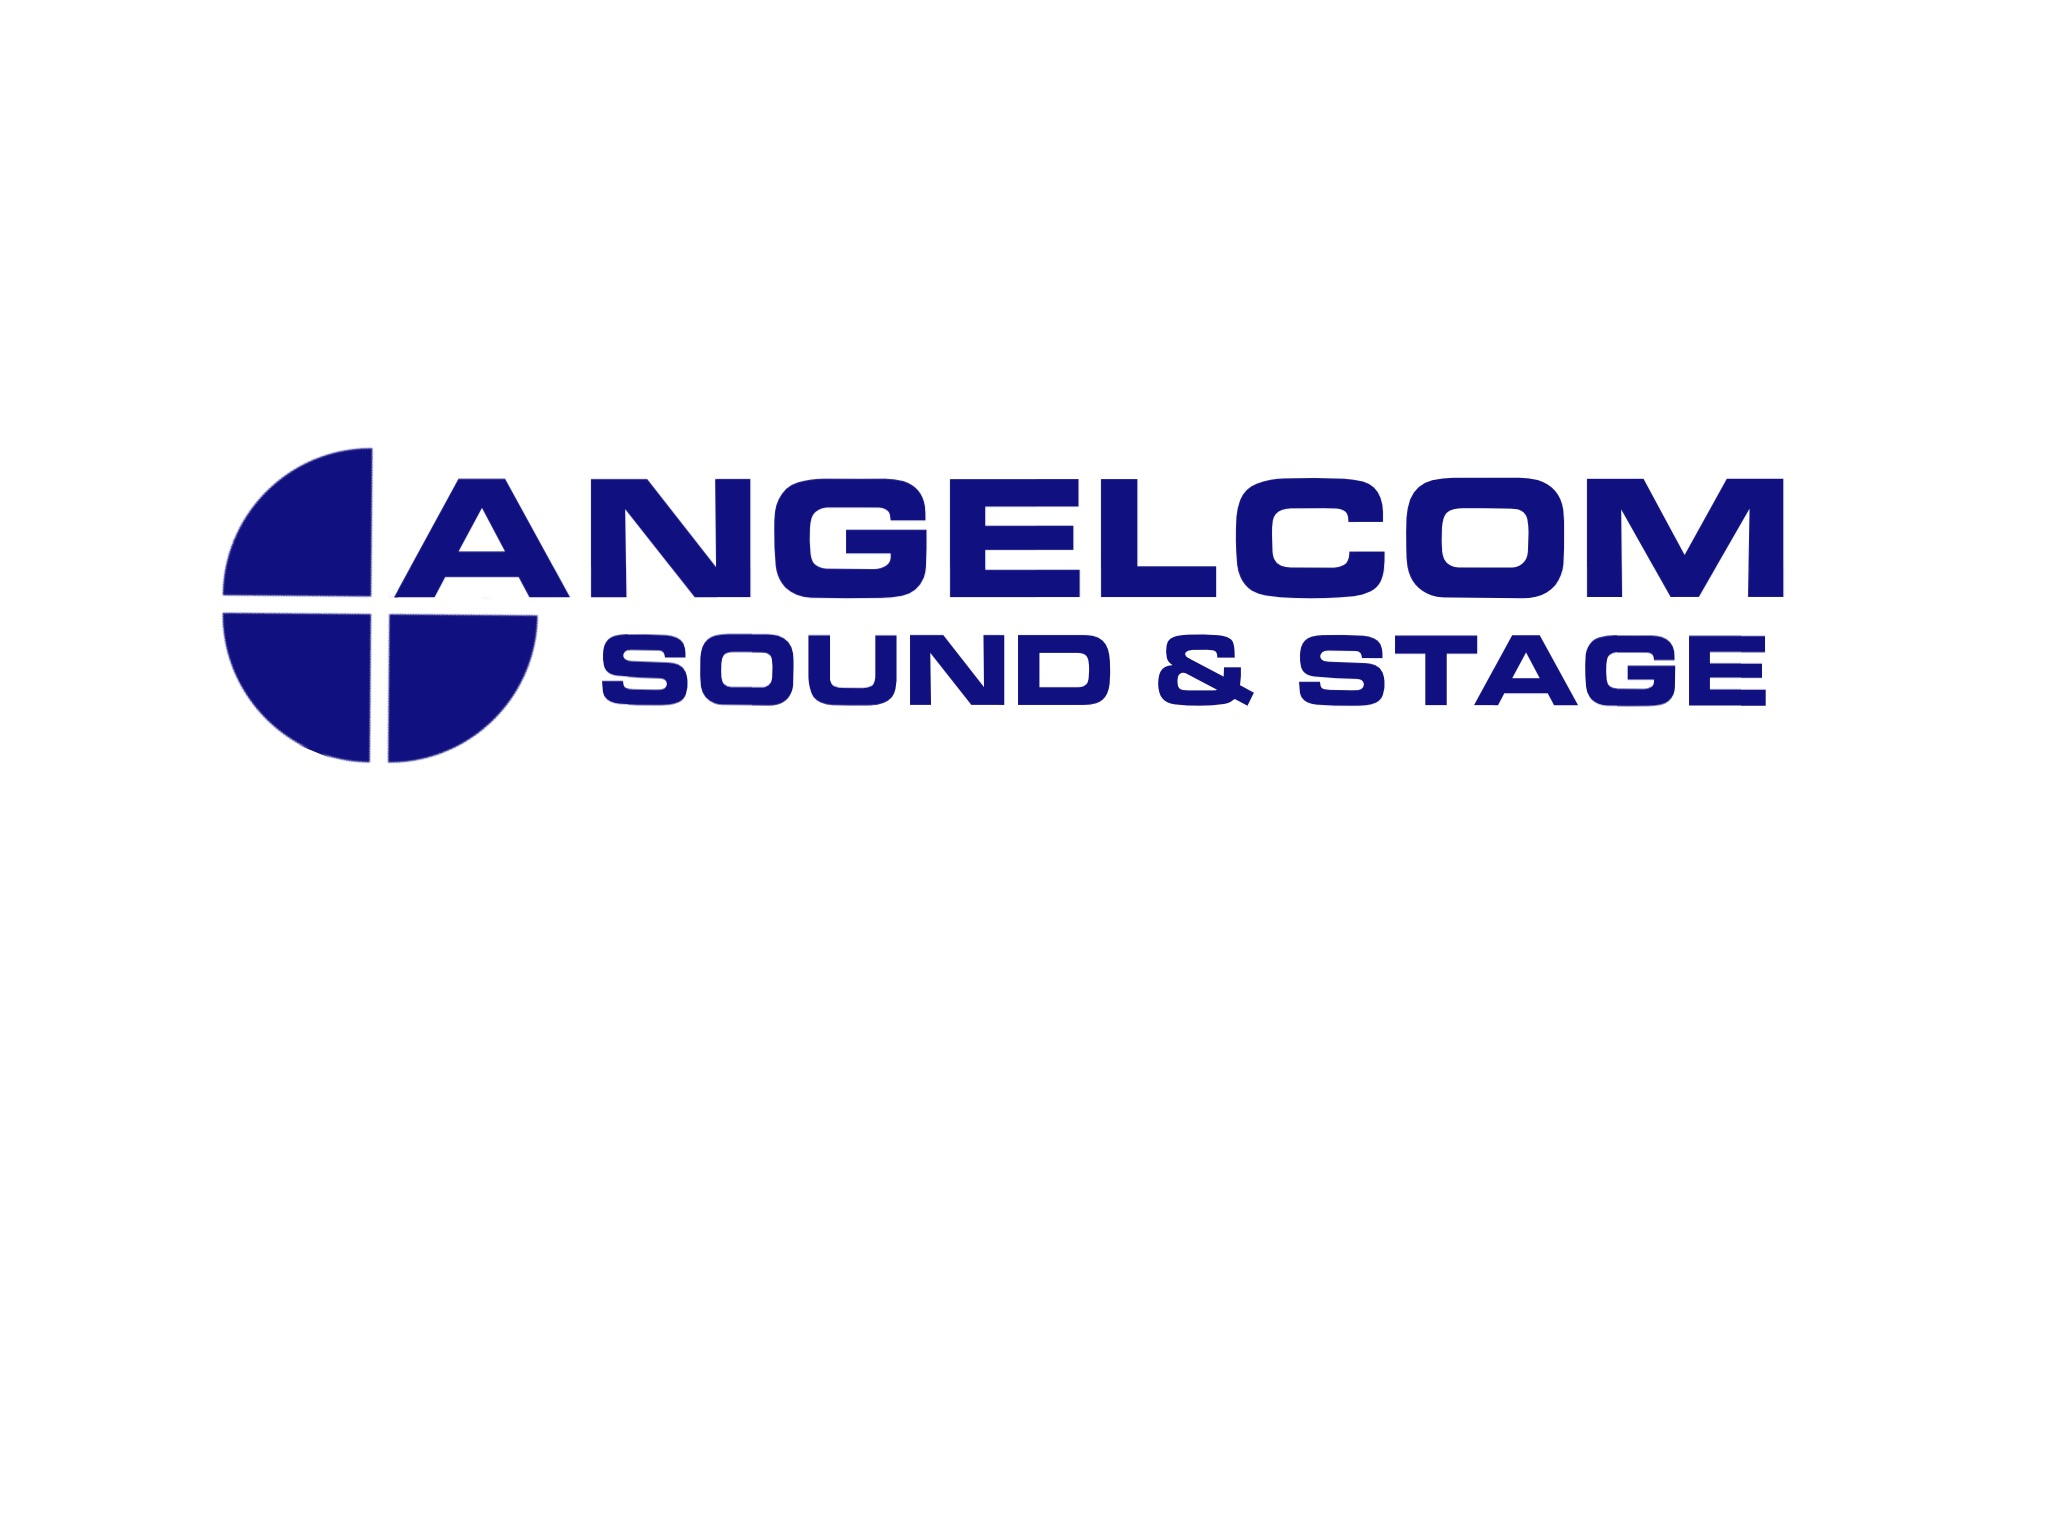 2. AngelCom (Gold)